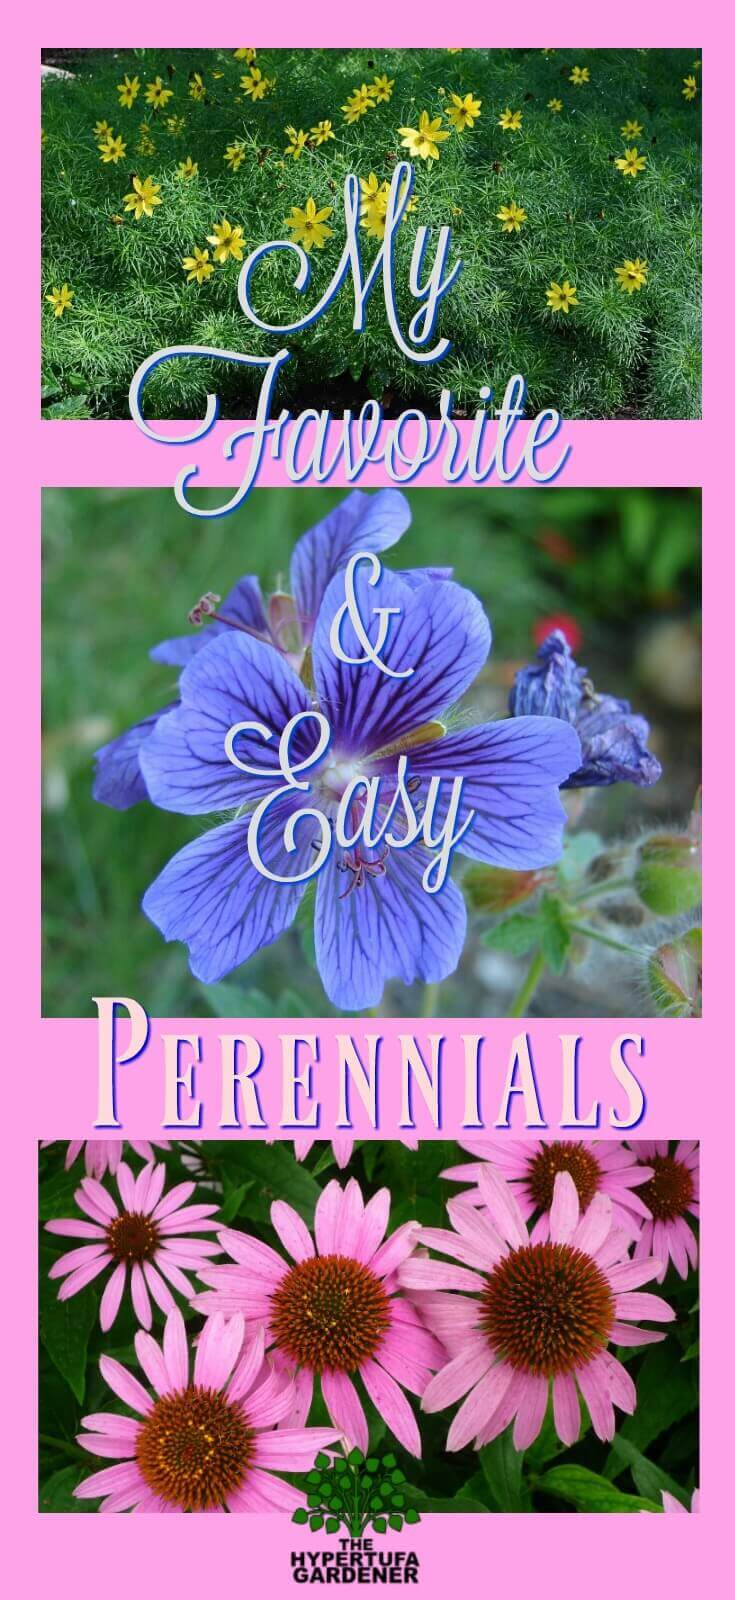 My favorite and easy perennials. These are great in an Ohio garden. Reliable and easy care!